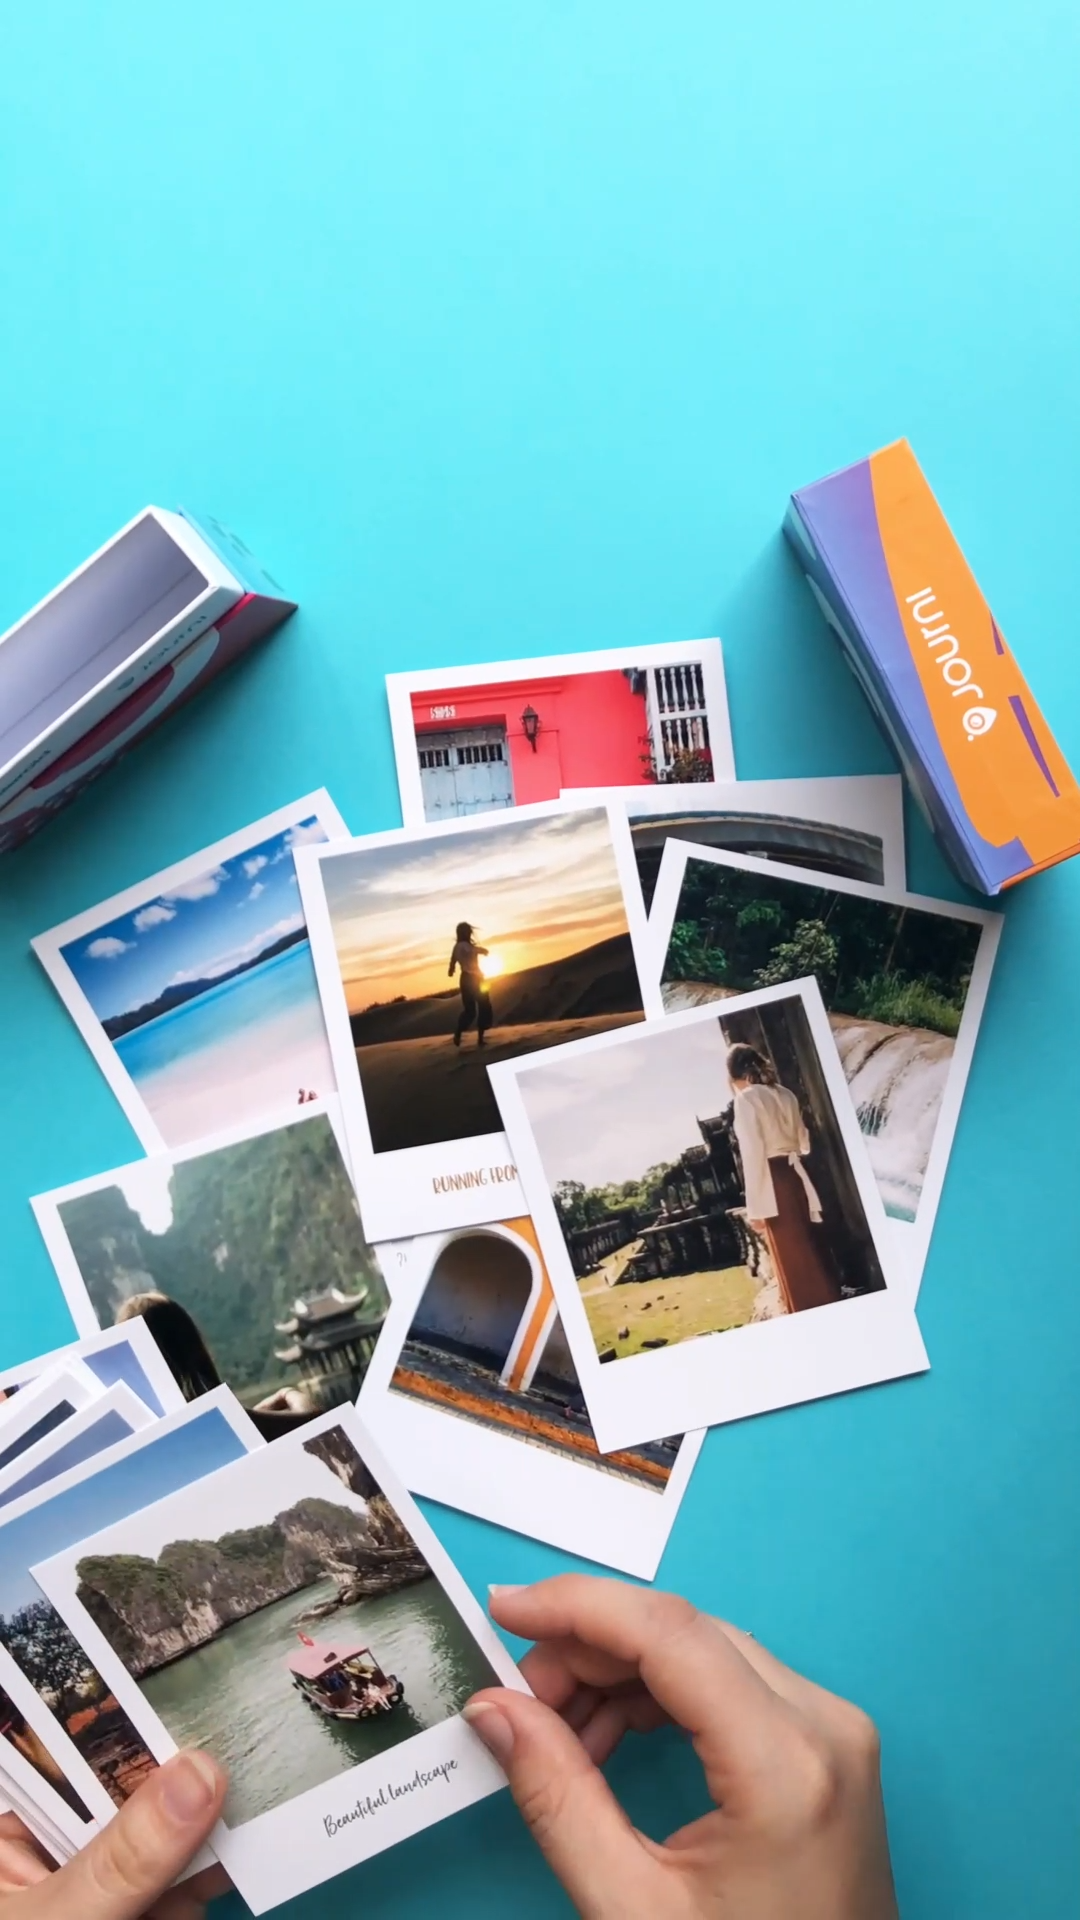 Capture your best shots as authentic Journi Polaroids and get the ultimate retro feeling. Order yours now and get 5 Polaroids for free with the code FIRSTBOOK 🔥